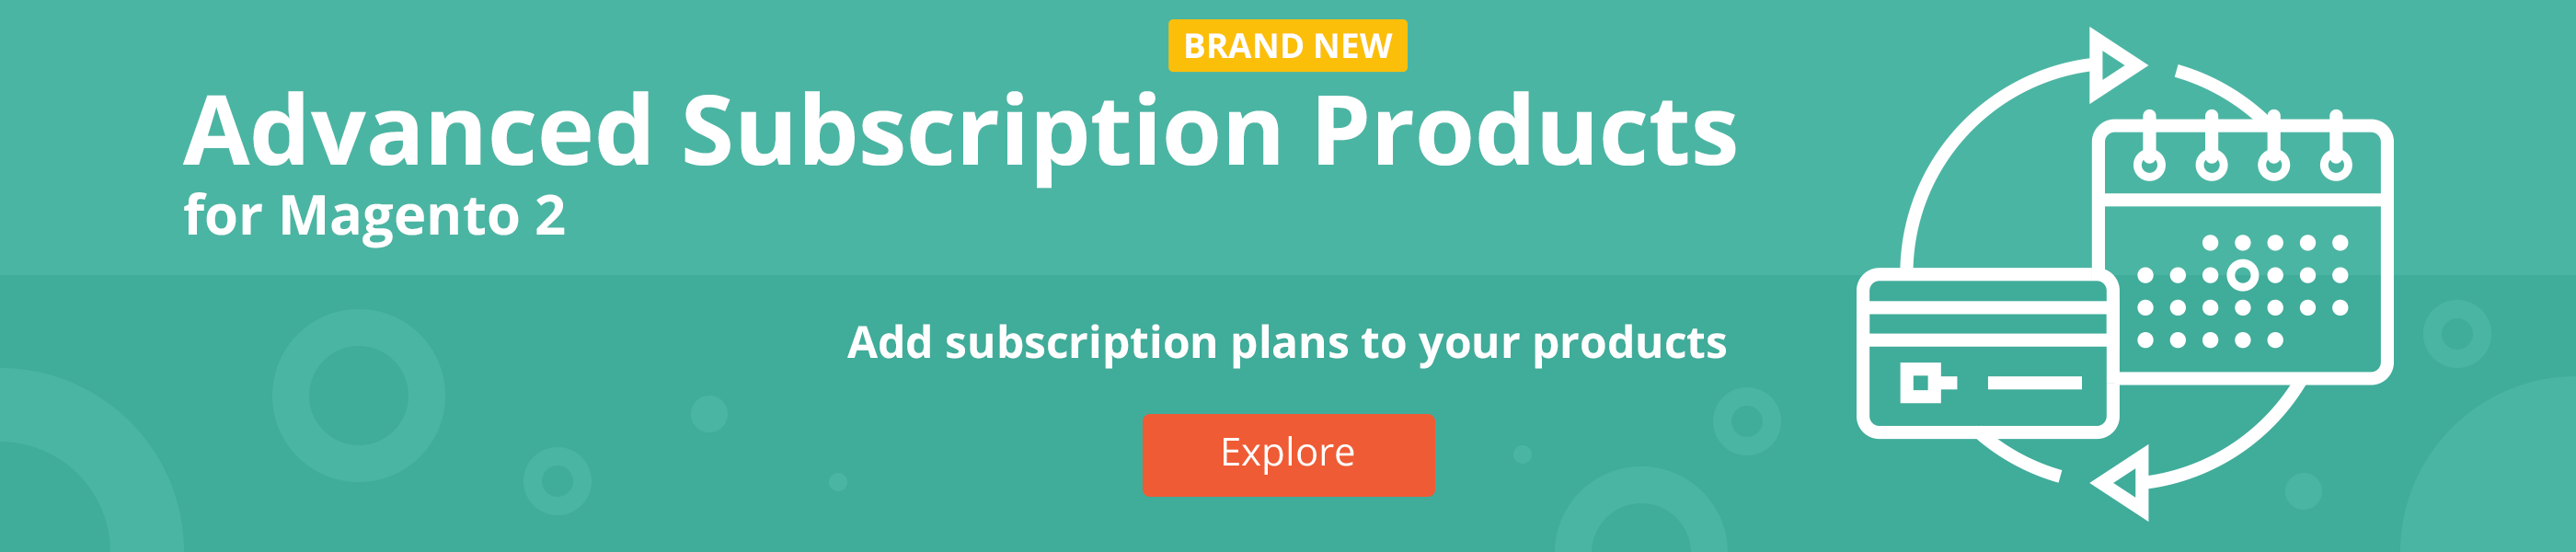 New Subscription Products